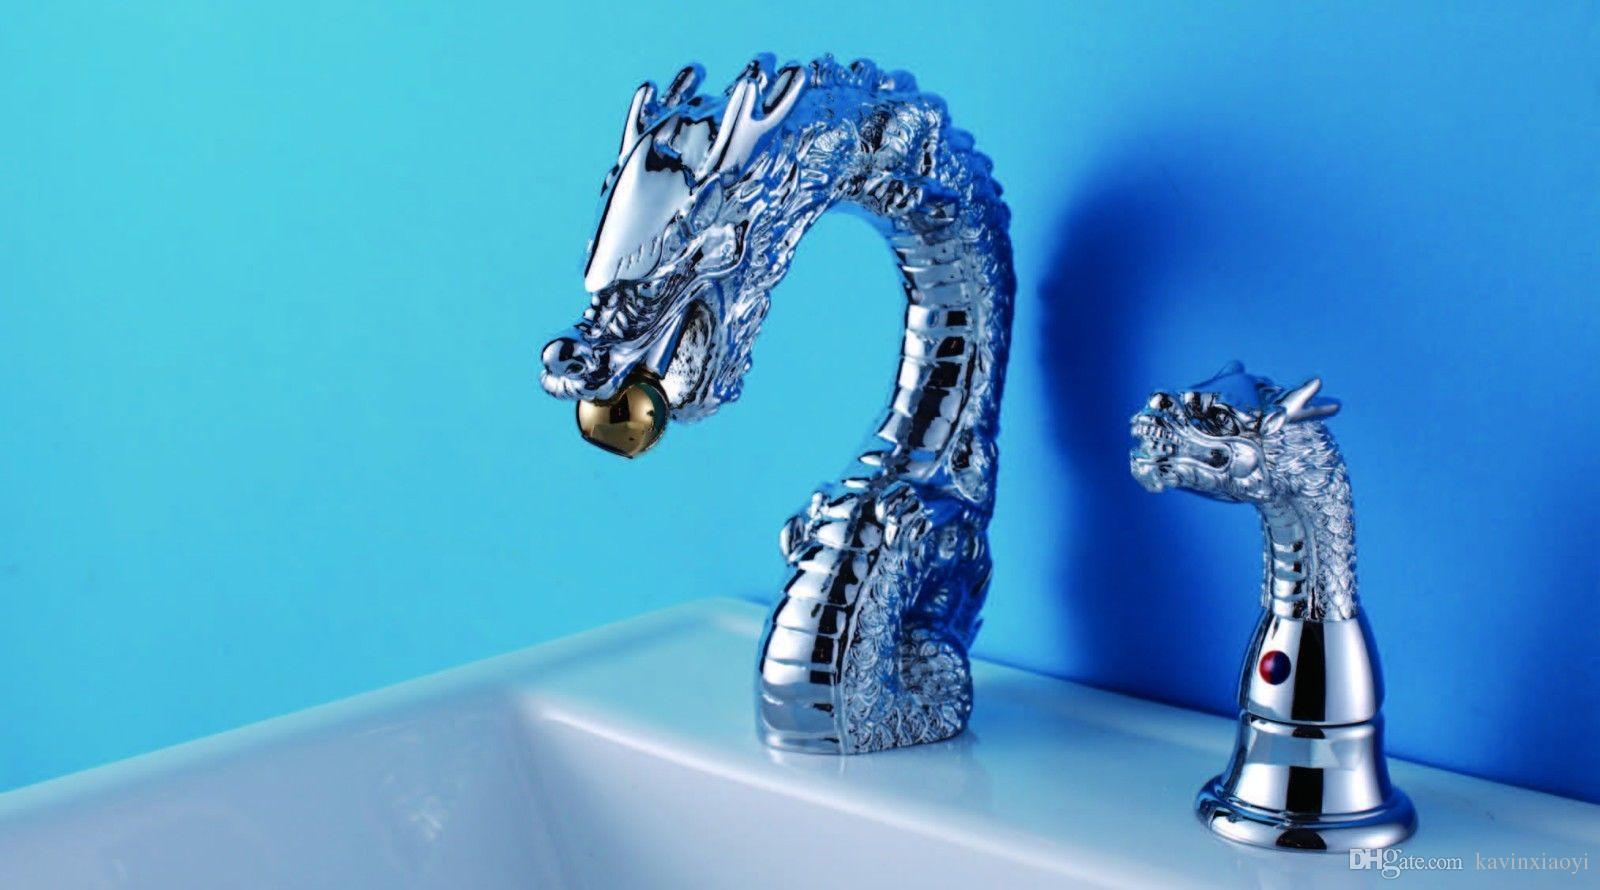 Free shipping 2 Holes single handle Chrome color Bathroom Sink Faucet dragon faucet widespread lavatory sink mixer tap